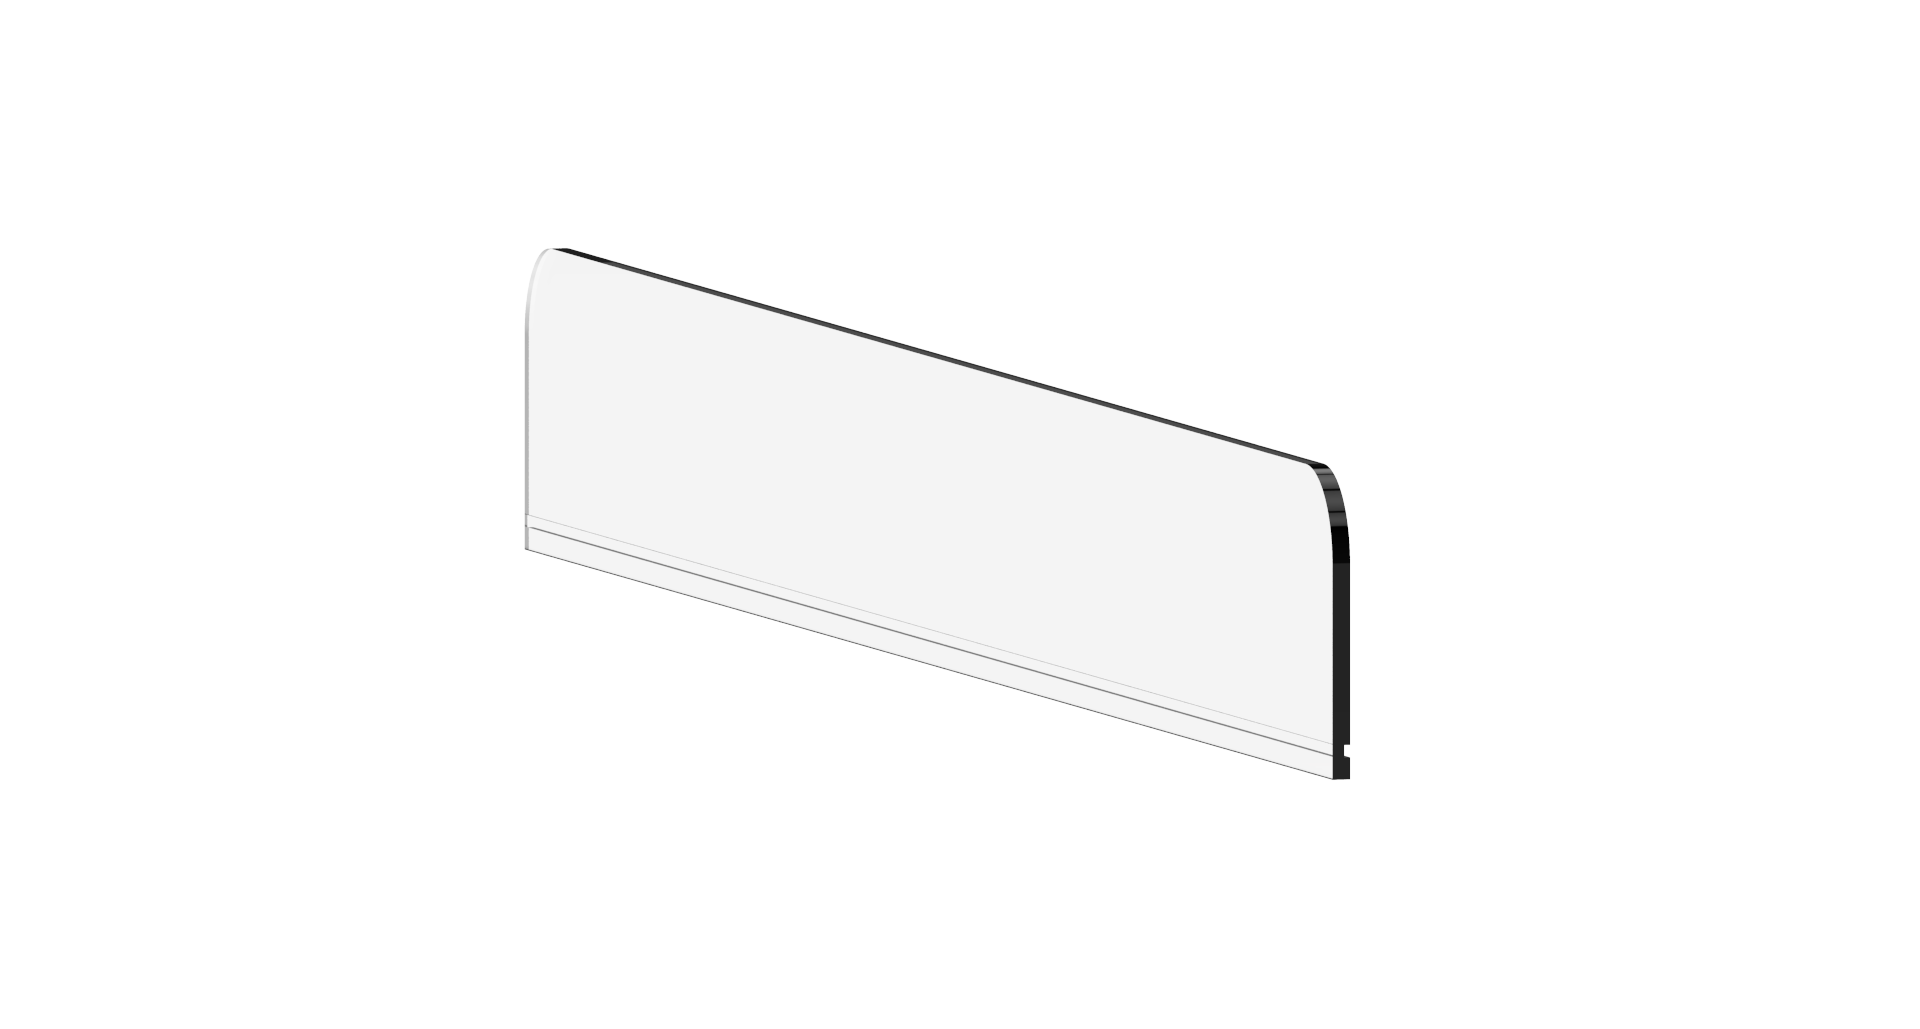 HBO-3210-1300-135 - Acrylic Frontretainer, 1300mmL x 135mmH  and 50mm back